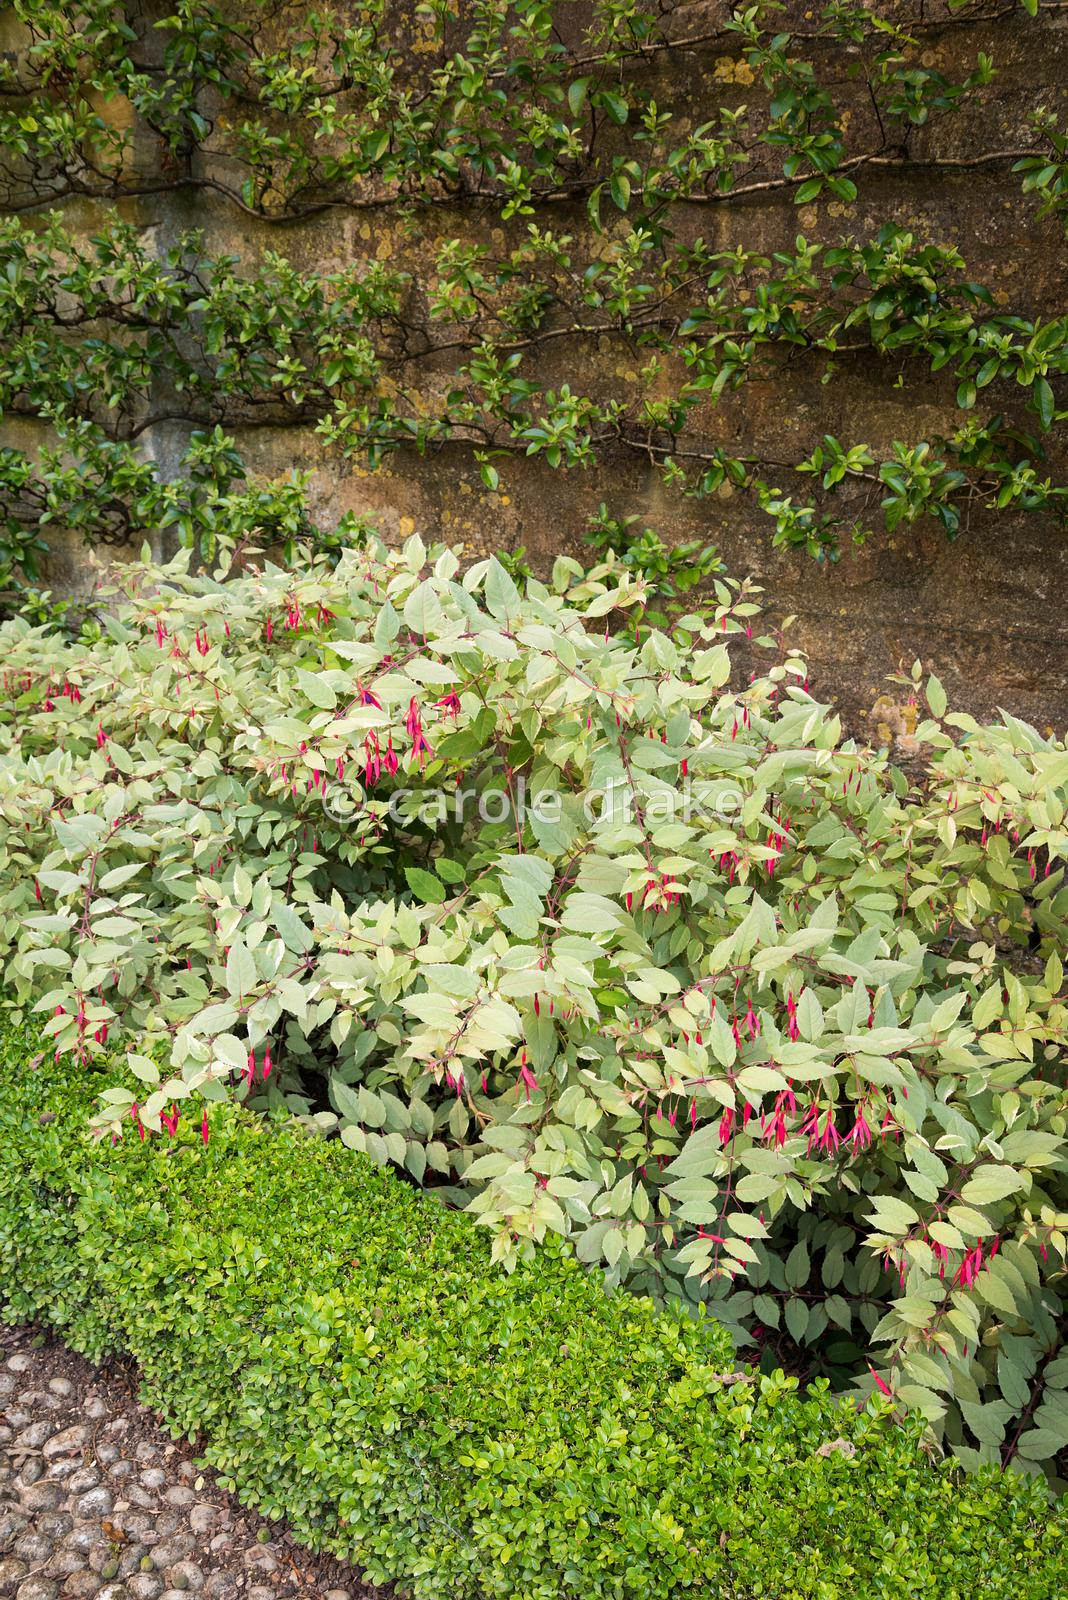 Fuchsia magellanica var. gracilis 'Variegata' inside box edged beds below espaliered pyracantha in the Fountain Garden at Bou...